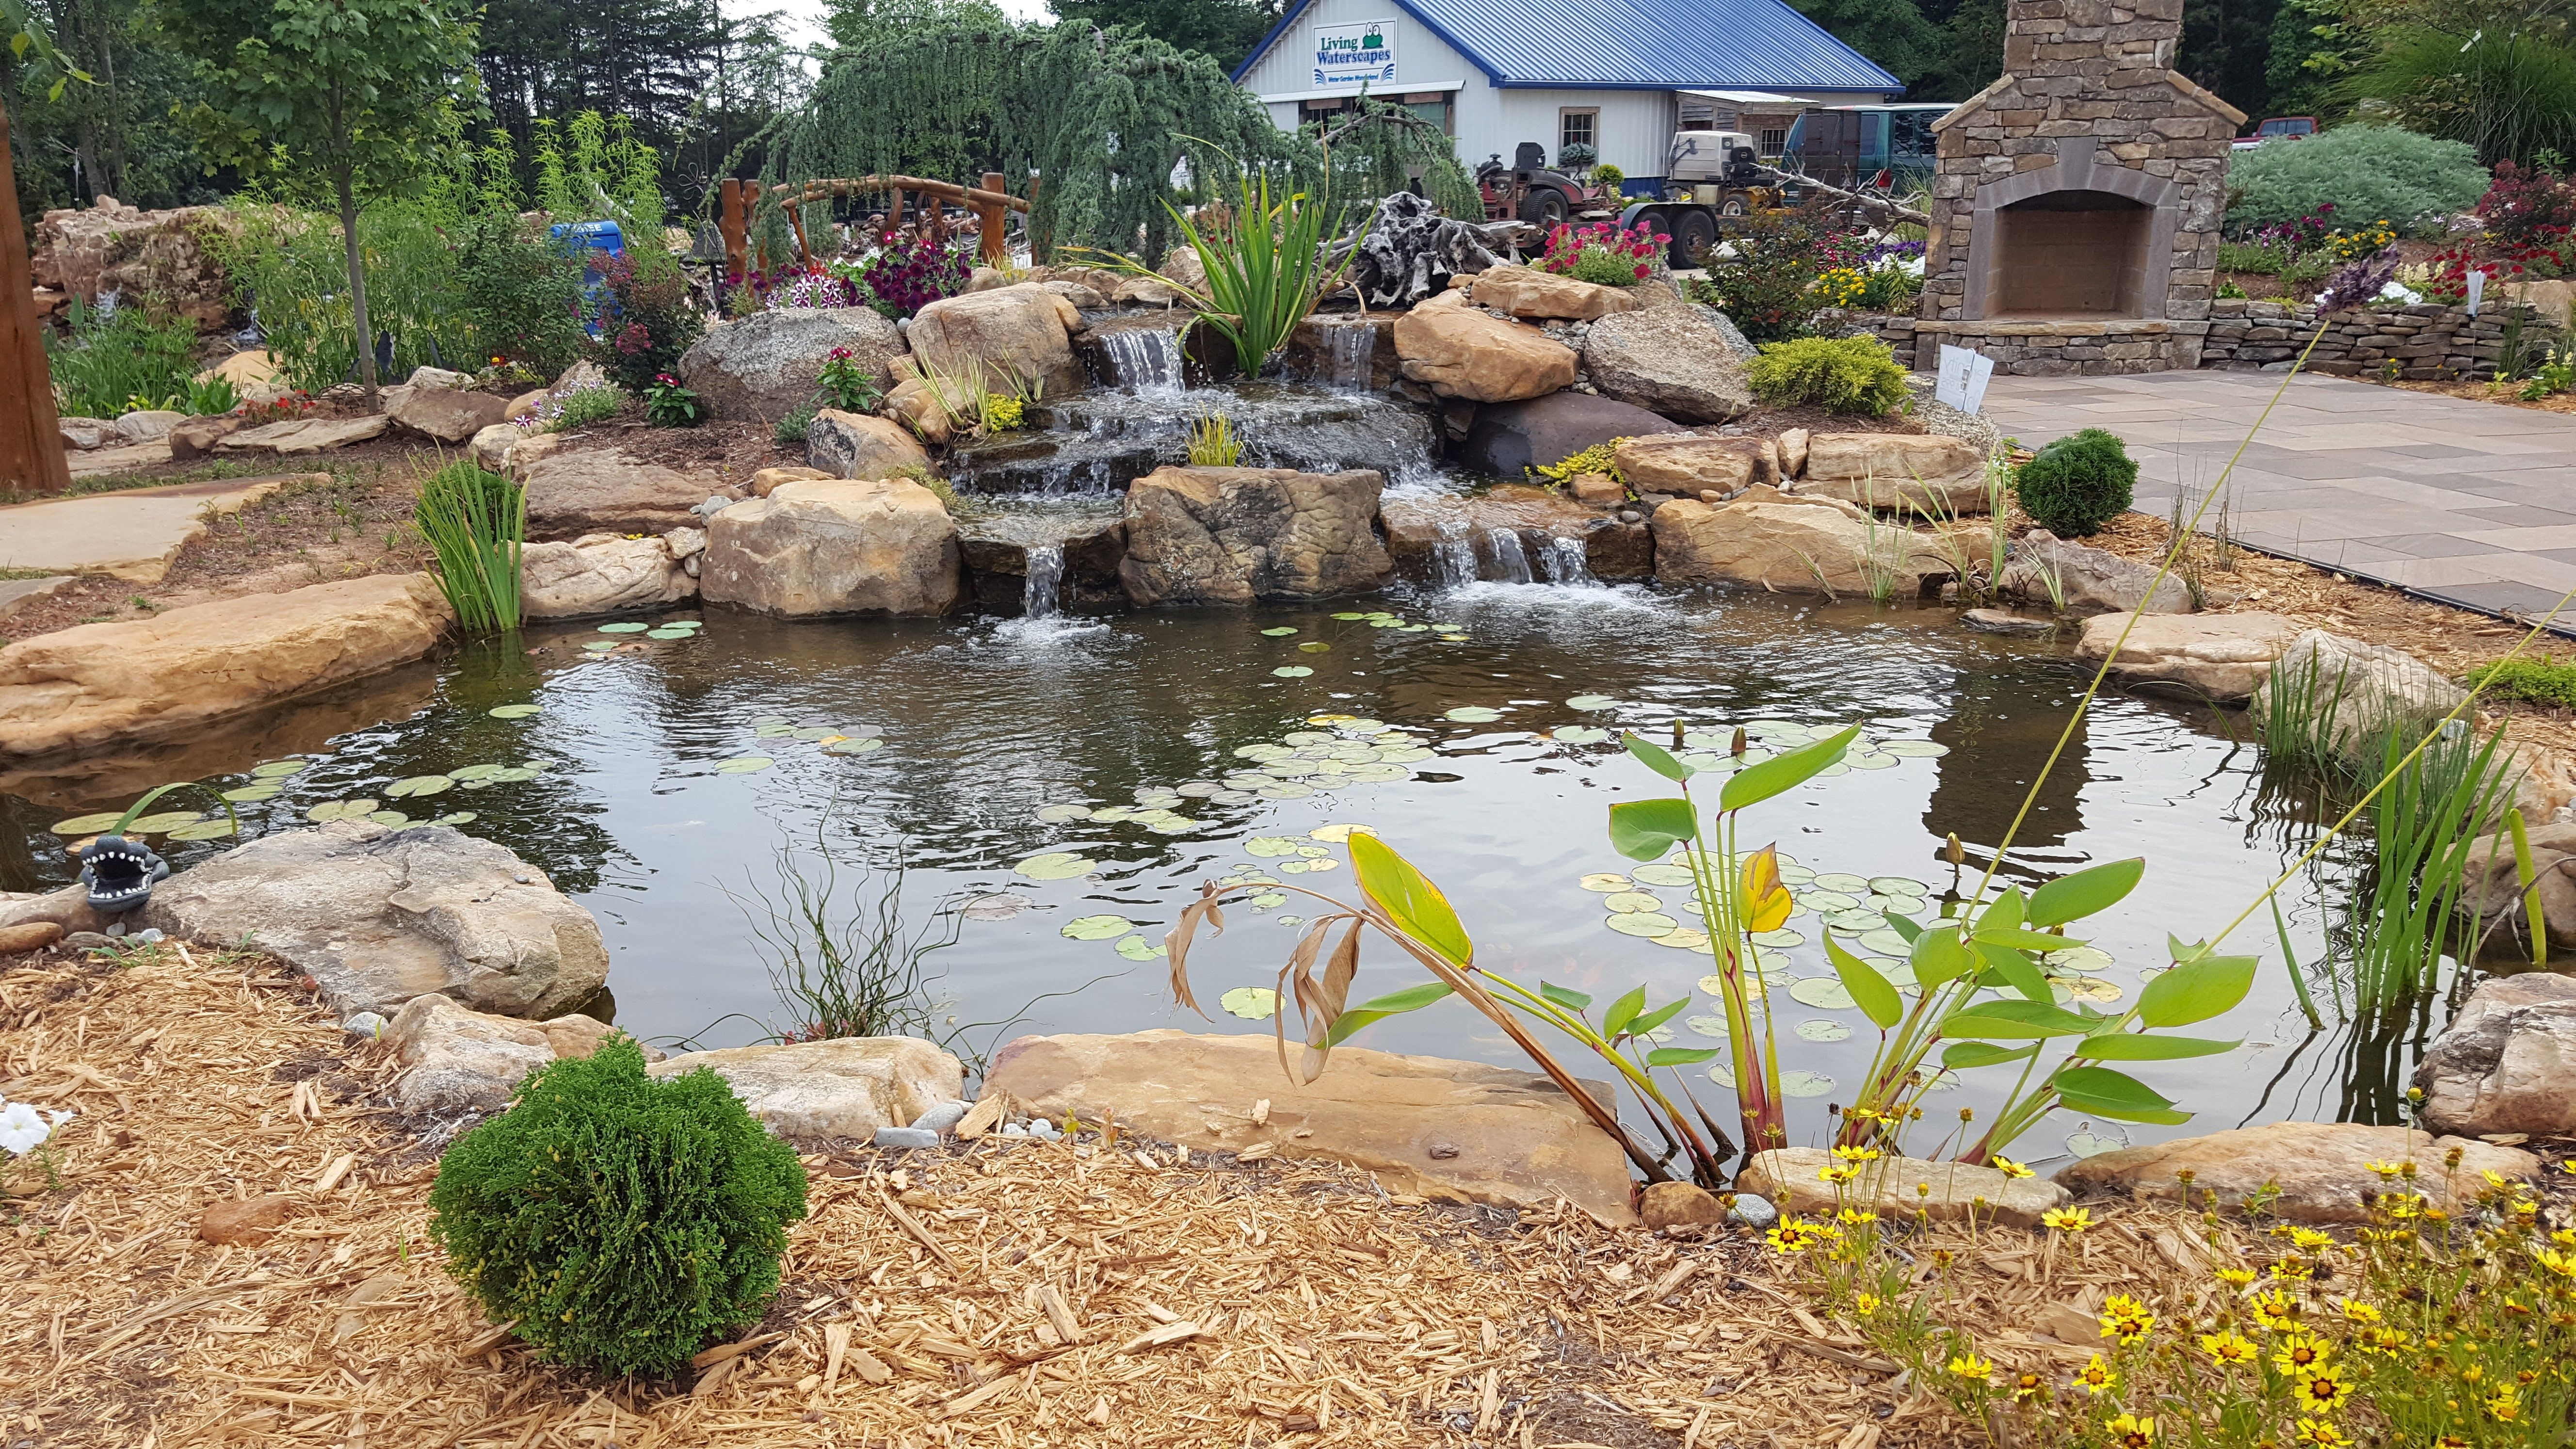 Serenity Deluxe Pond Package By Living Waterscapes Near Greensboro Nc Pond Life Pond Fish Ponds